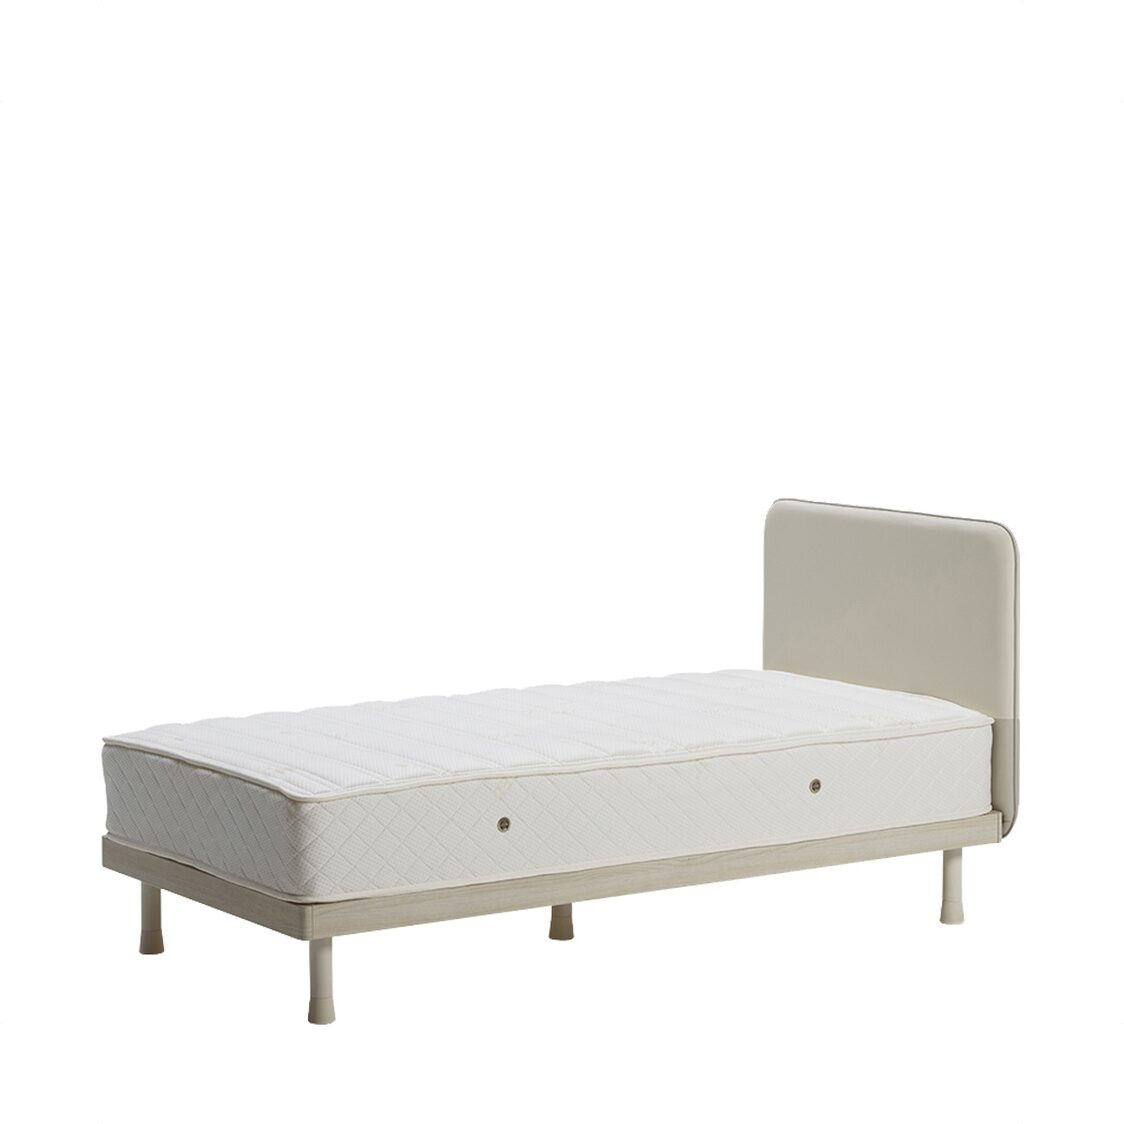 Iloom Cusino bed Artificial Leather S HB721002-A4210